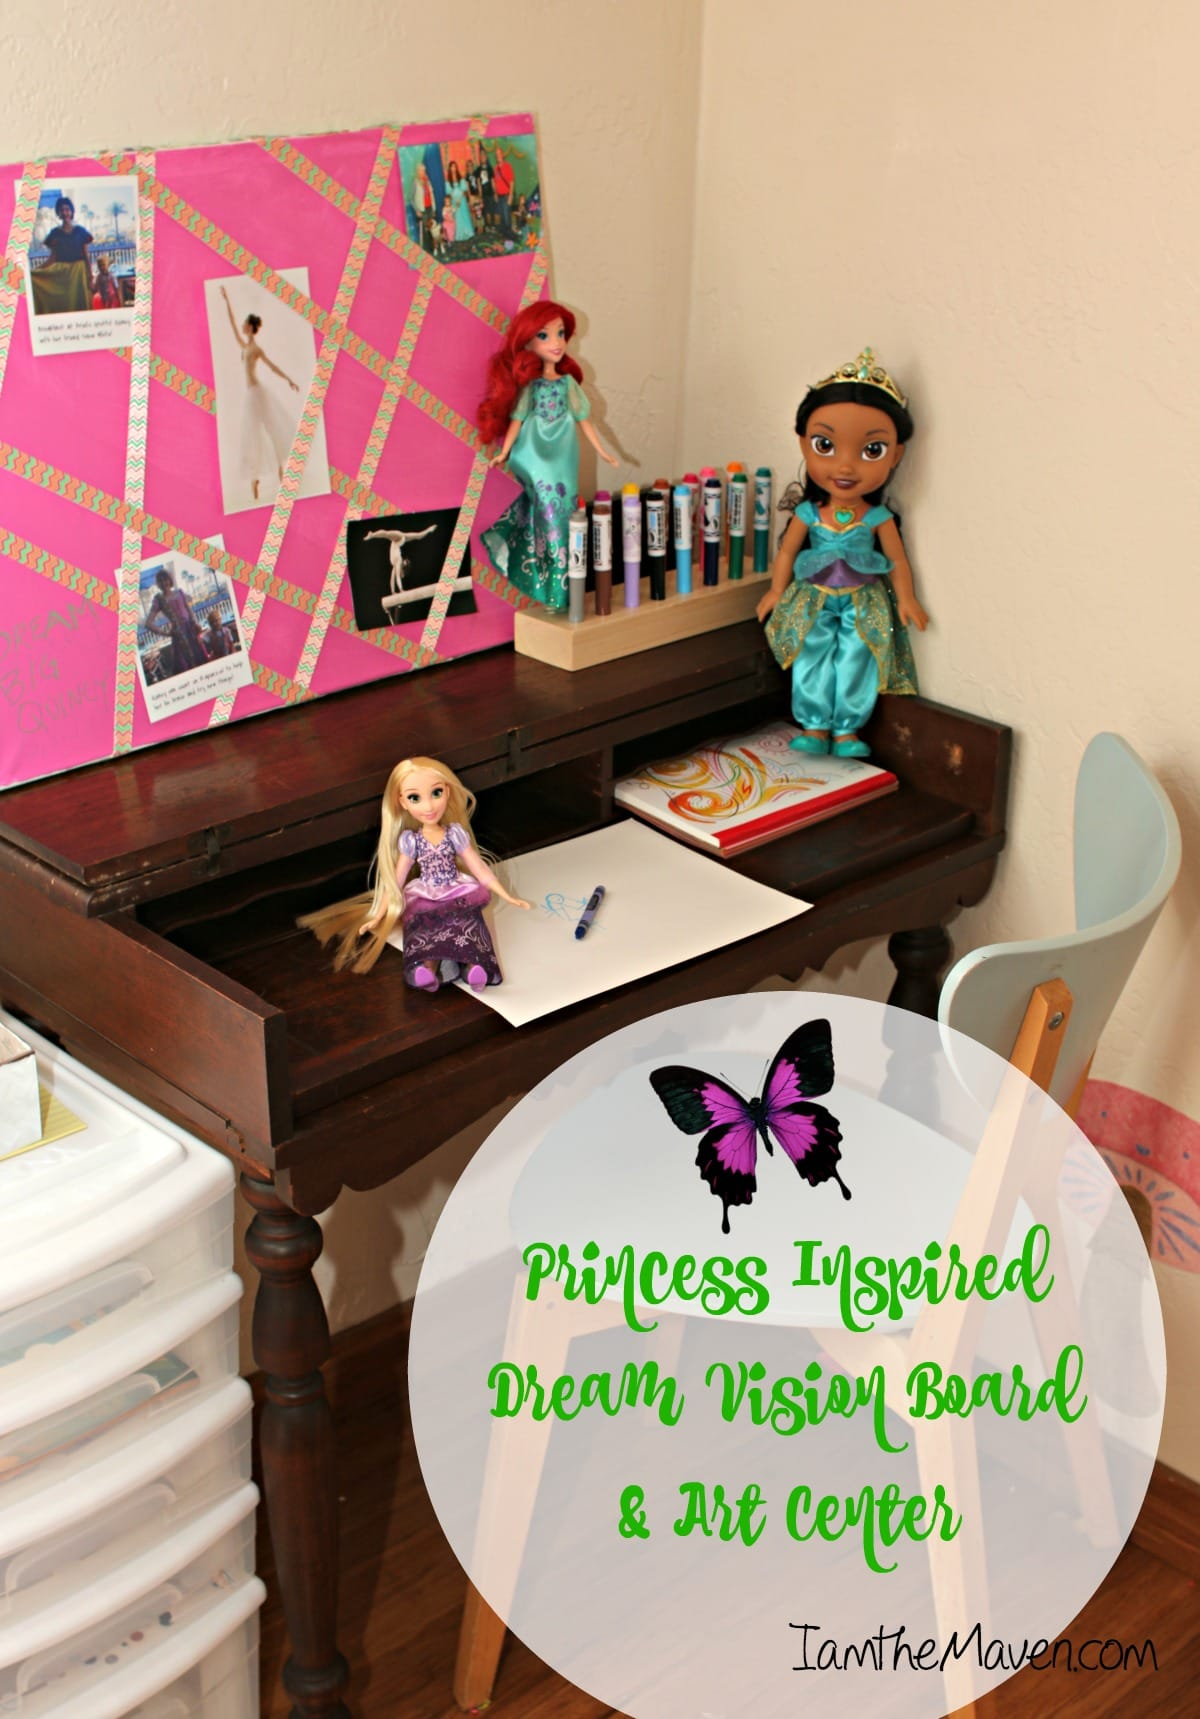 Make a Disney Princess Vision Board and Art Center for the Little Dreamer in Your Life #InspireBigDreams #DreamBigPrincess AD